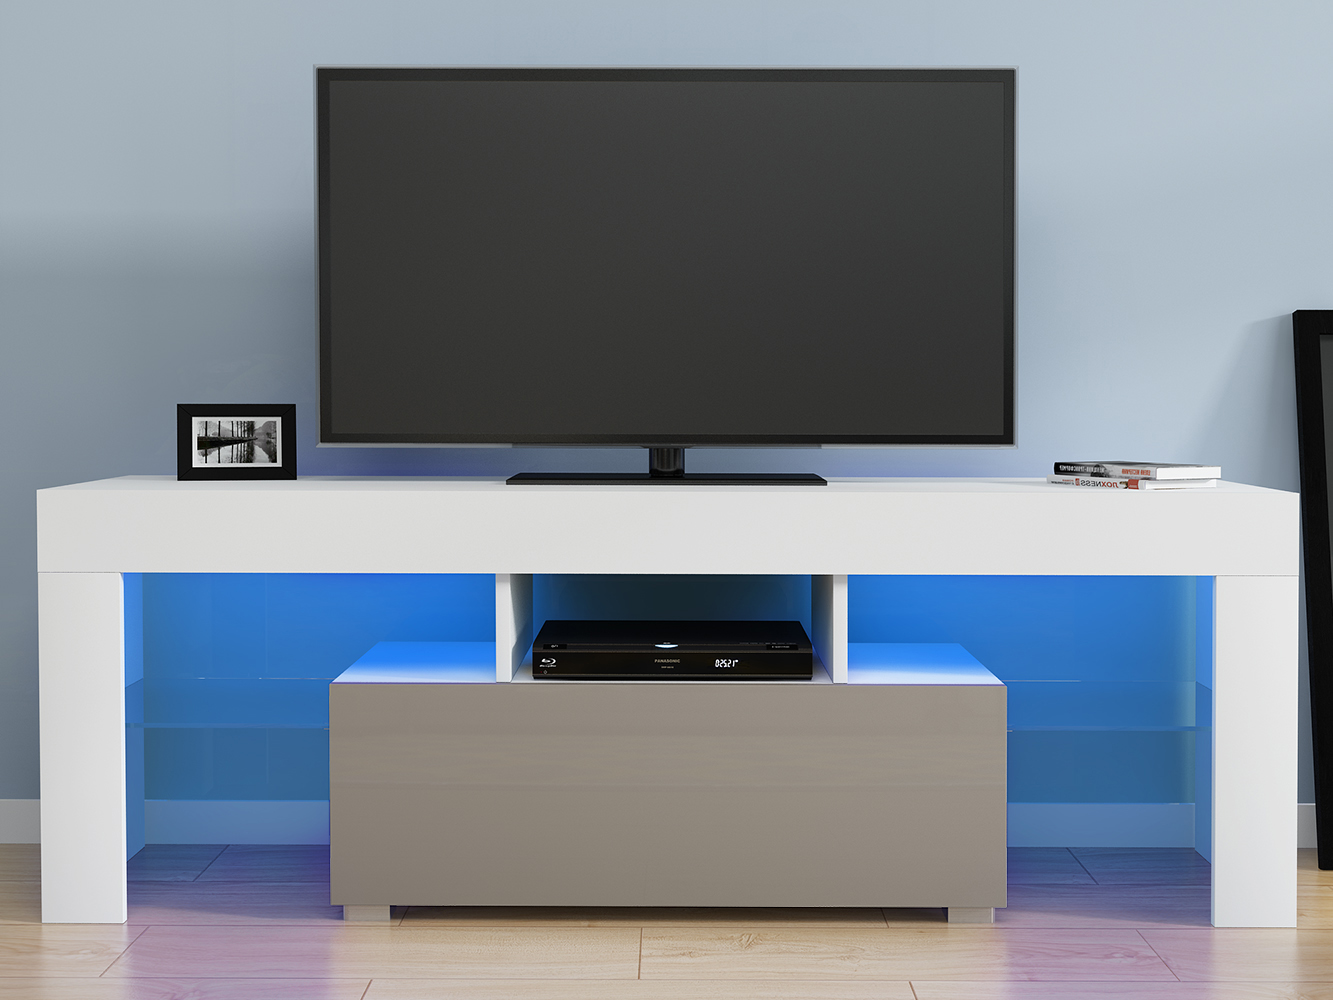 Panana 130cm High Gloss Front LED TV Stand Modern LED Living Room Furniture TV Cabinets Design Meuble Tv Fast Delivery